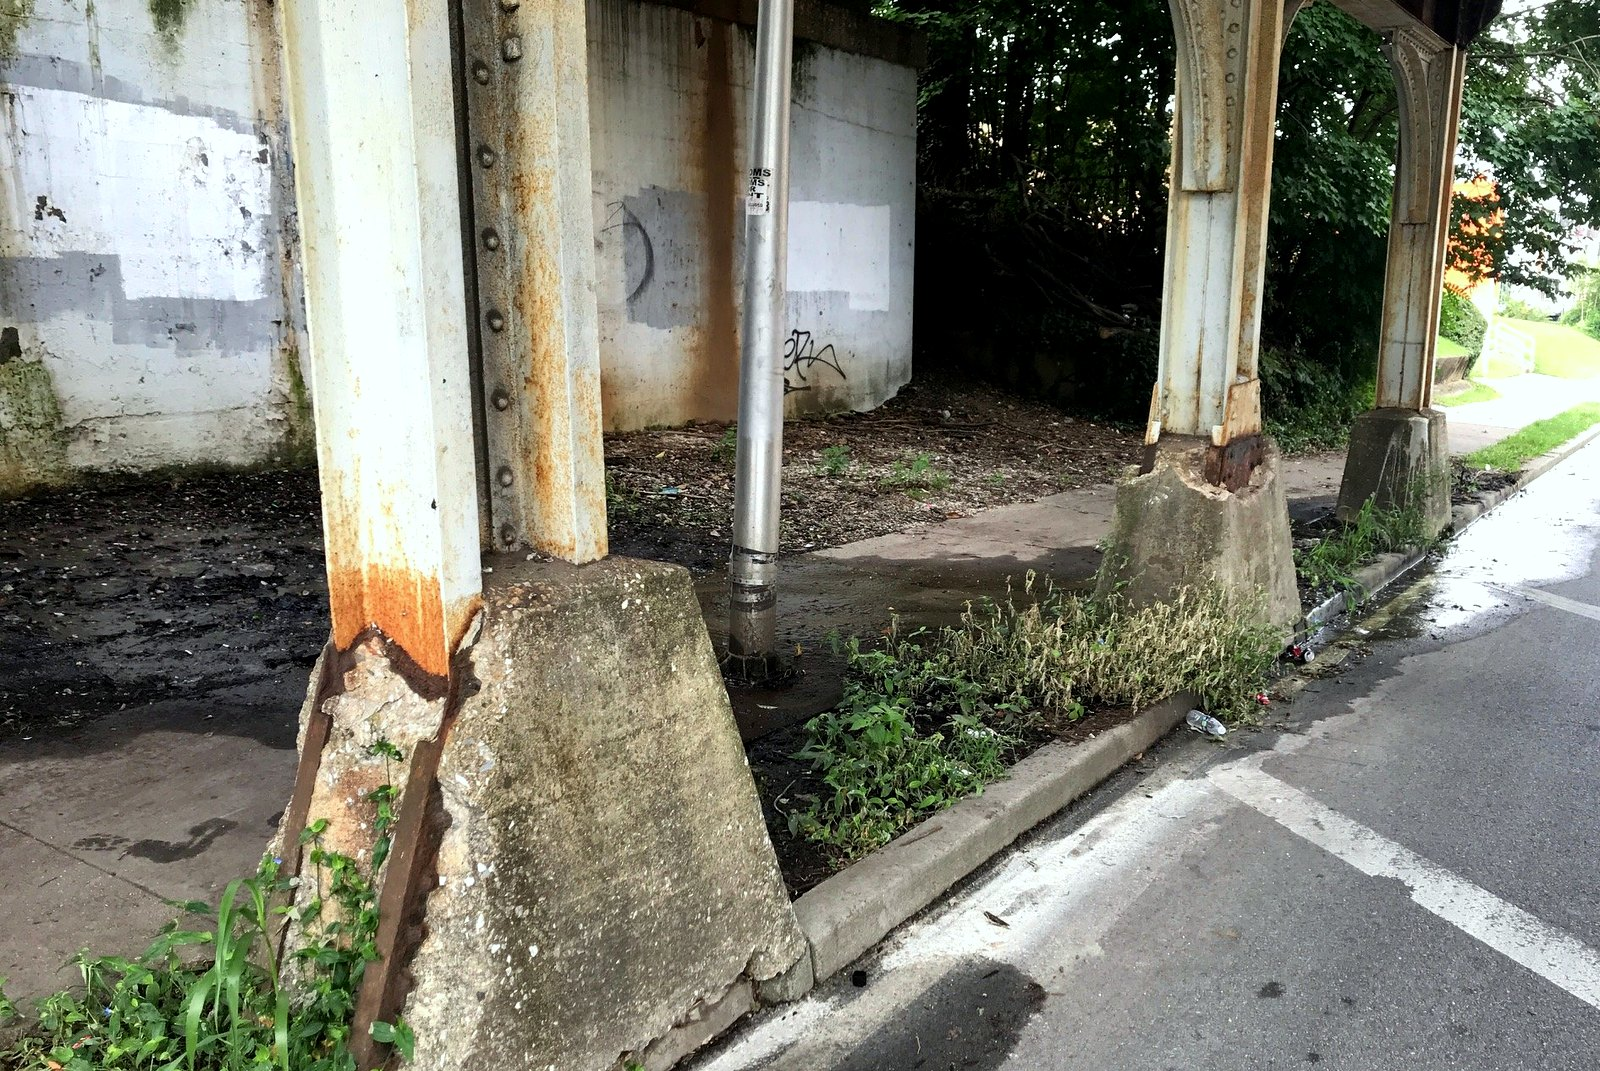 The vertical piers under the CSX bridge are rusted and the concrete footings are spalling. most likely from water damage. (Mark Reutter)